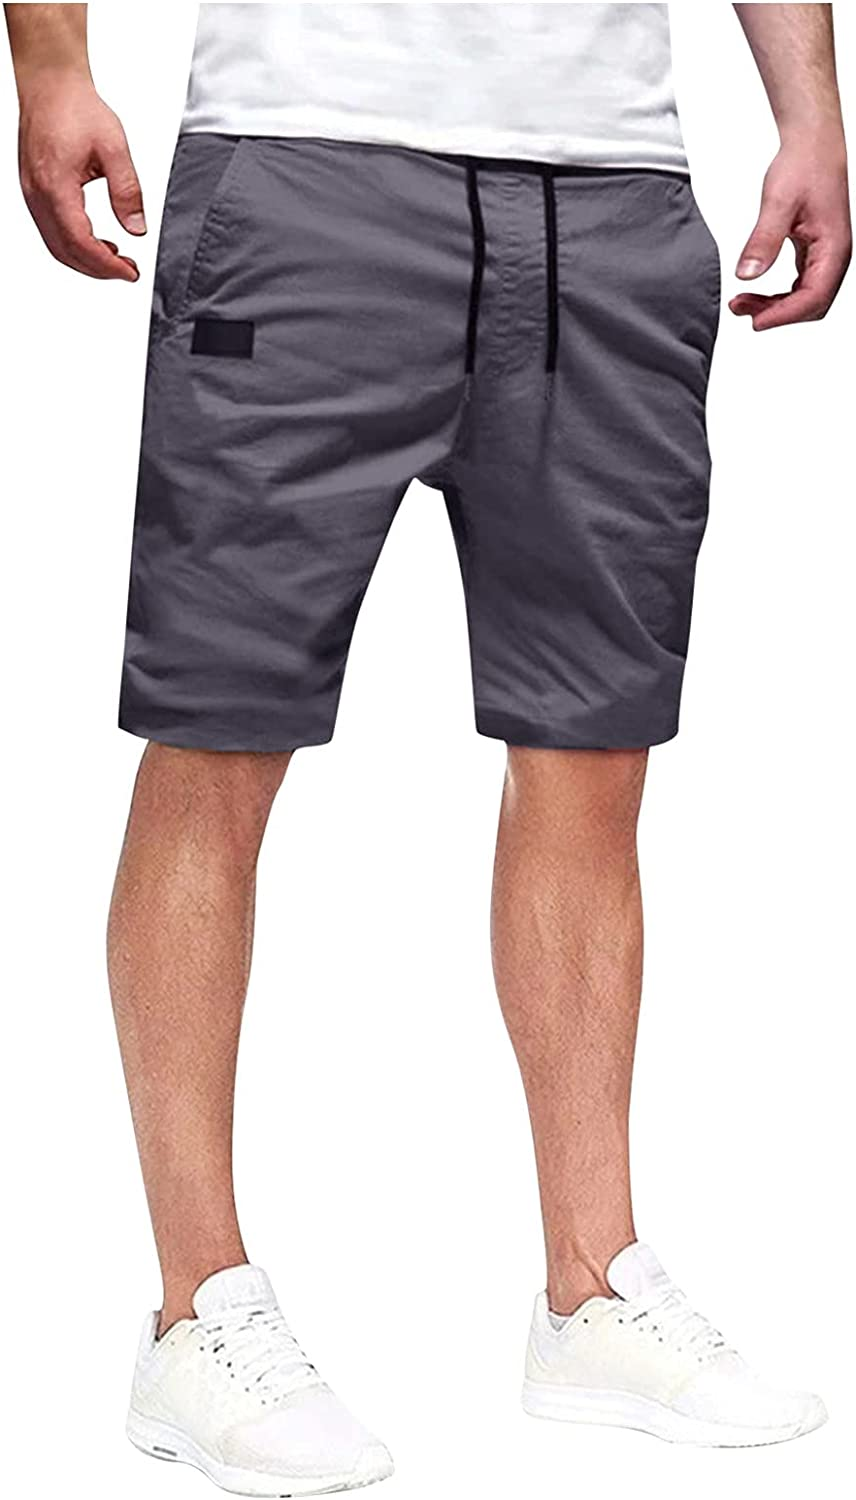 Outdoor Tactical Shorts for Men Summer Casual Lace Up Cargo Shorts Solid Color Quick Dry Sports Short Pants - Limsea